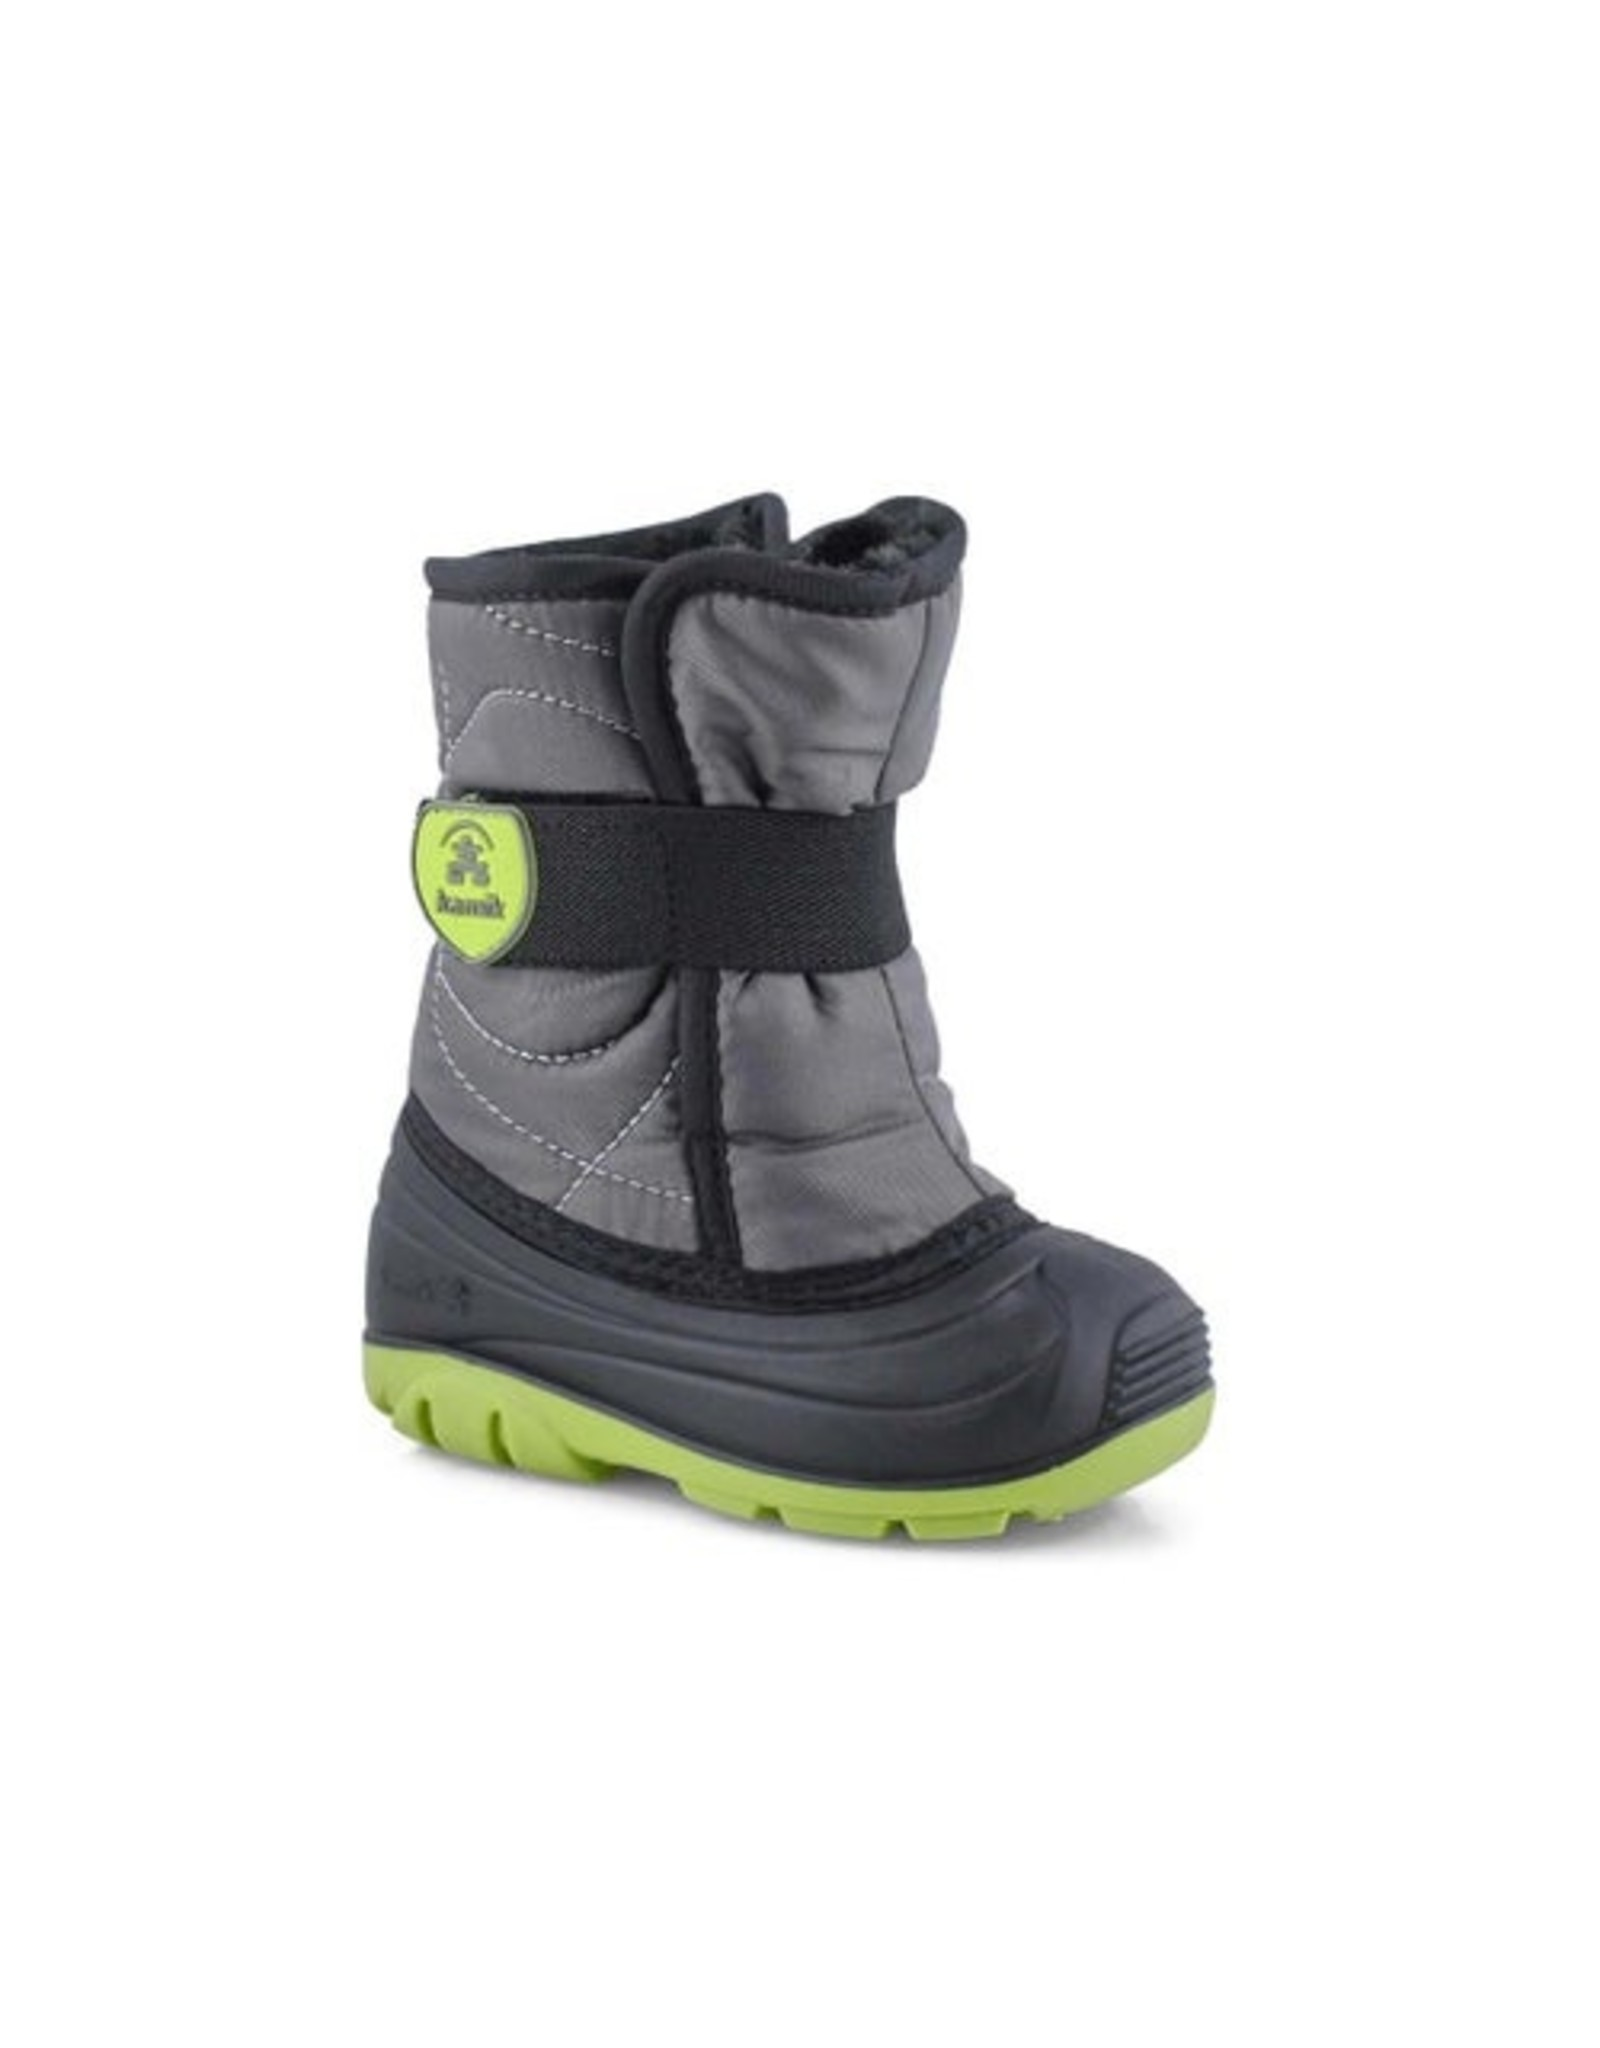 KAMIK KAMIK SNOWBUG TODDLER SNOW BOOT